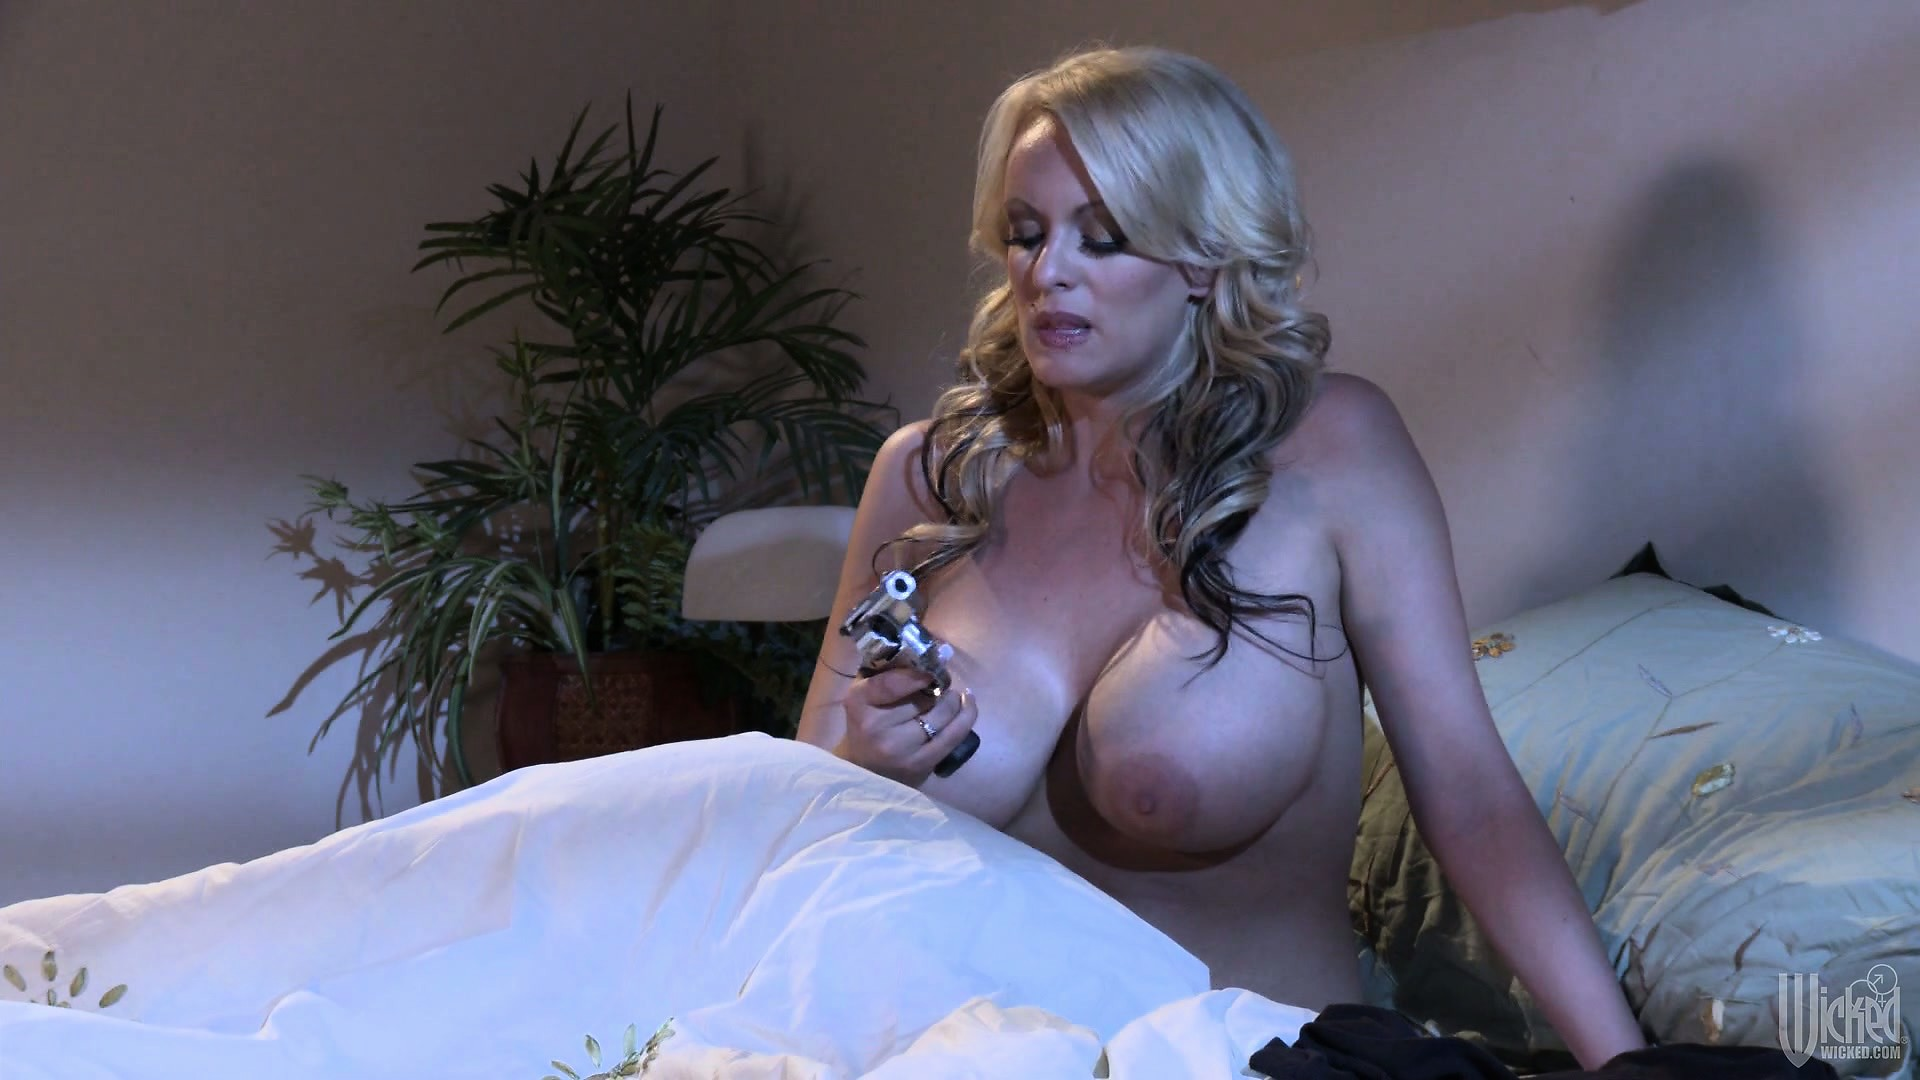 Free Mobile Porn & Sex Videos & Sex Movies - Sexual Experience Of Hot Slut  Riley Becomes Exposed To A Great Danger - 281318 - ProPorn.com